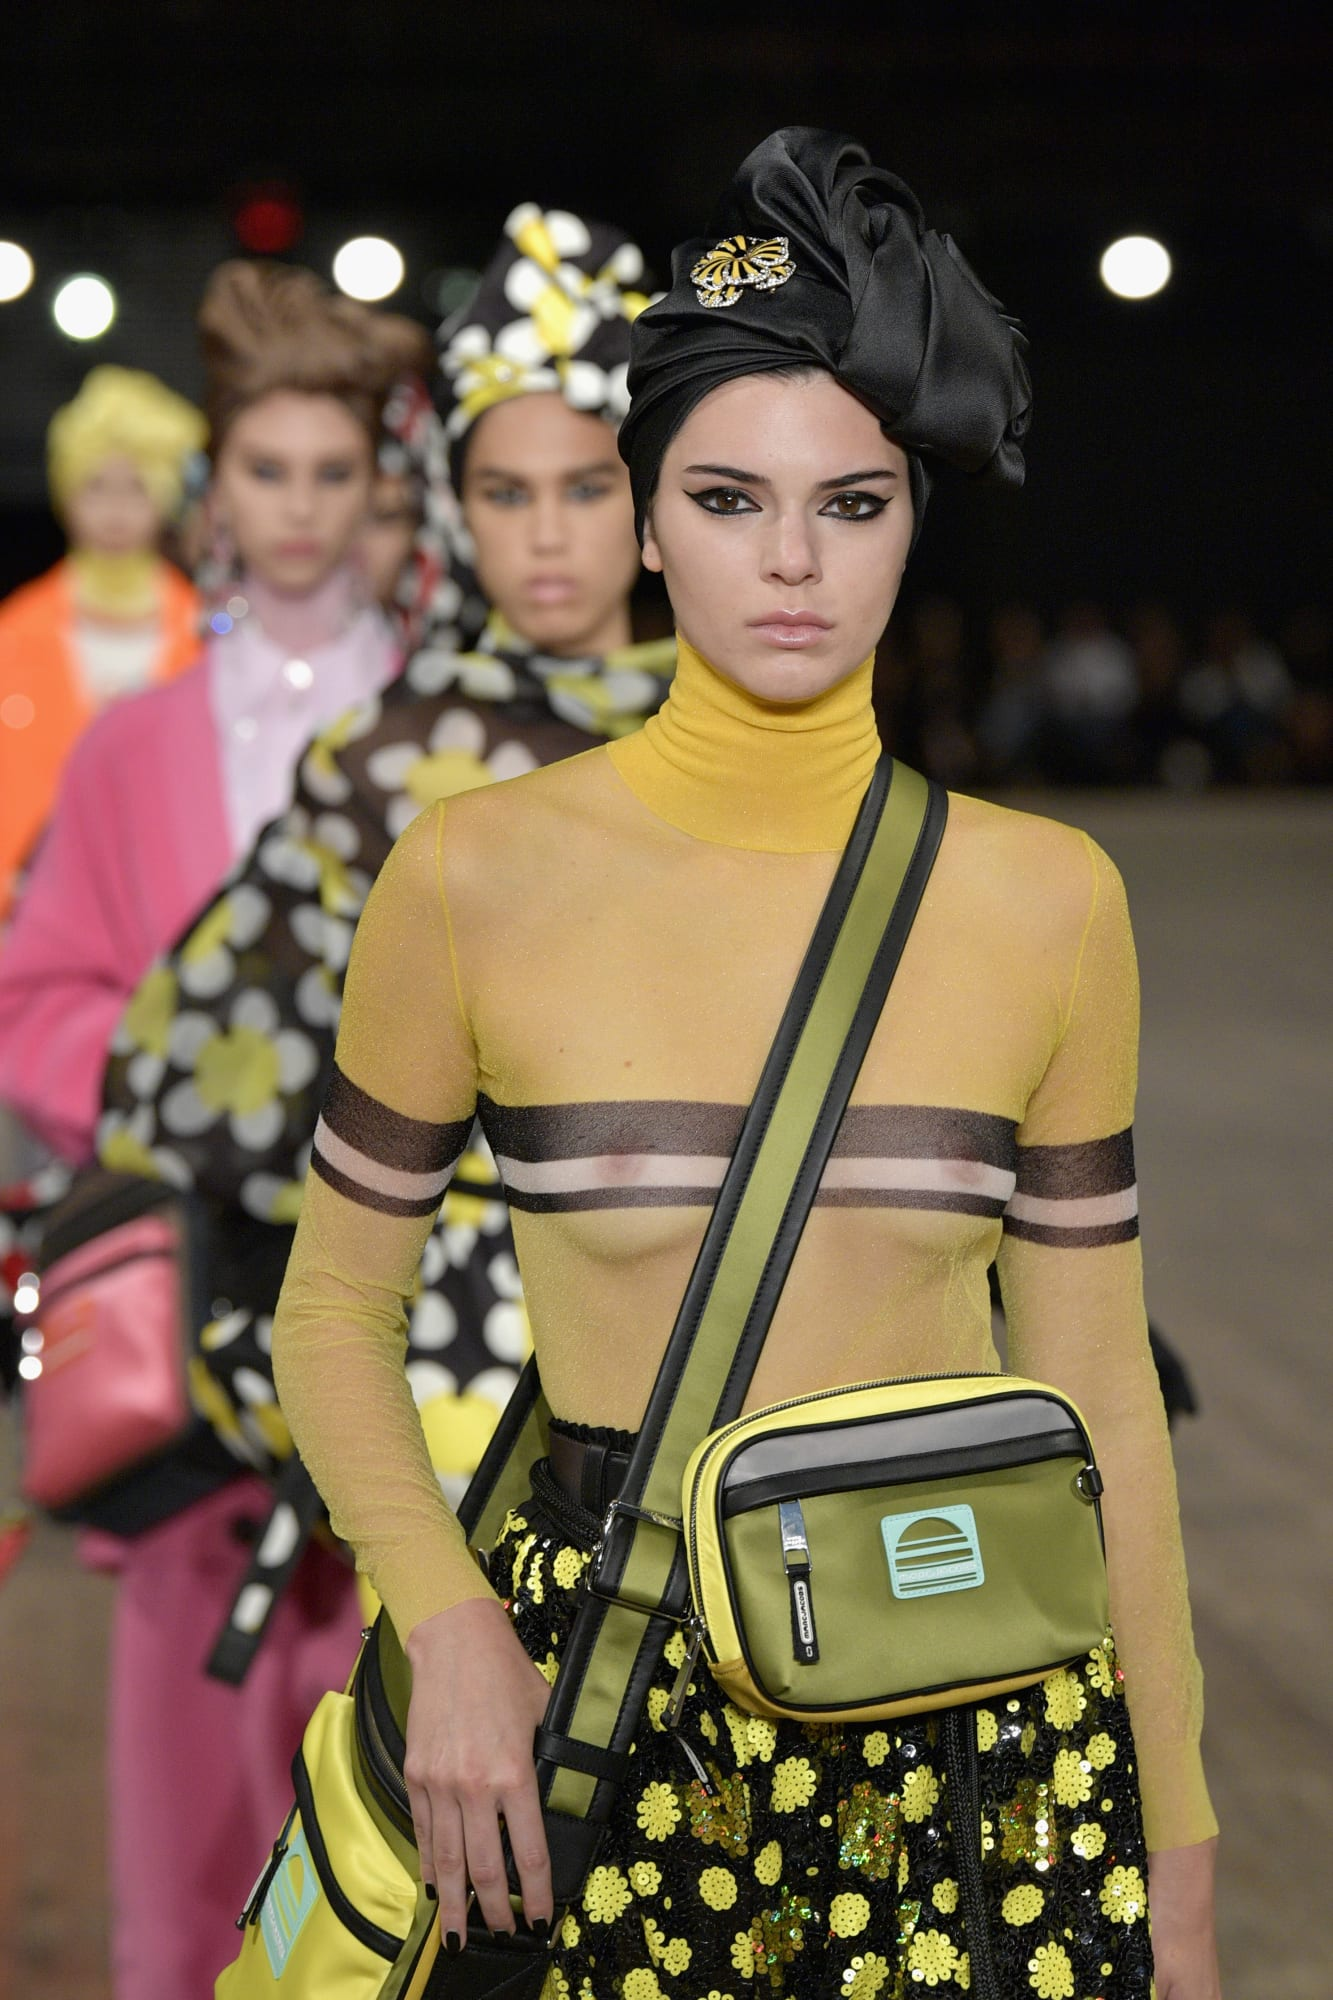 No one blinked at the marc jacobs fashion show when a model wore a - Marc Jacobs Ss18 Collection Runway Photo Getty Fashion Week